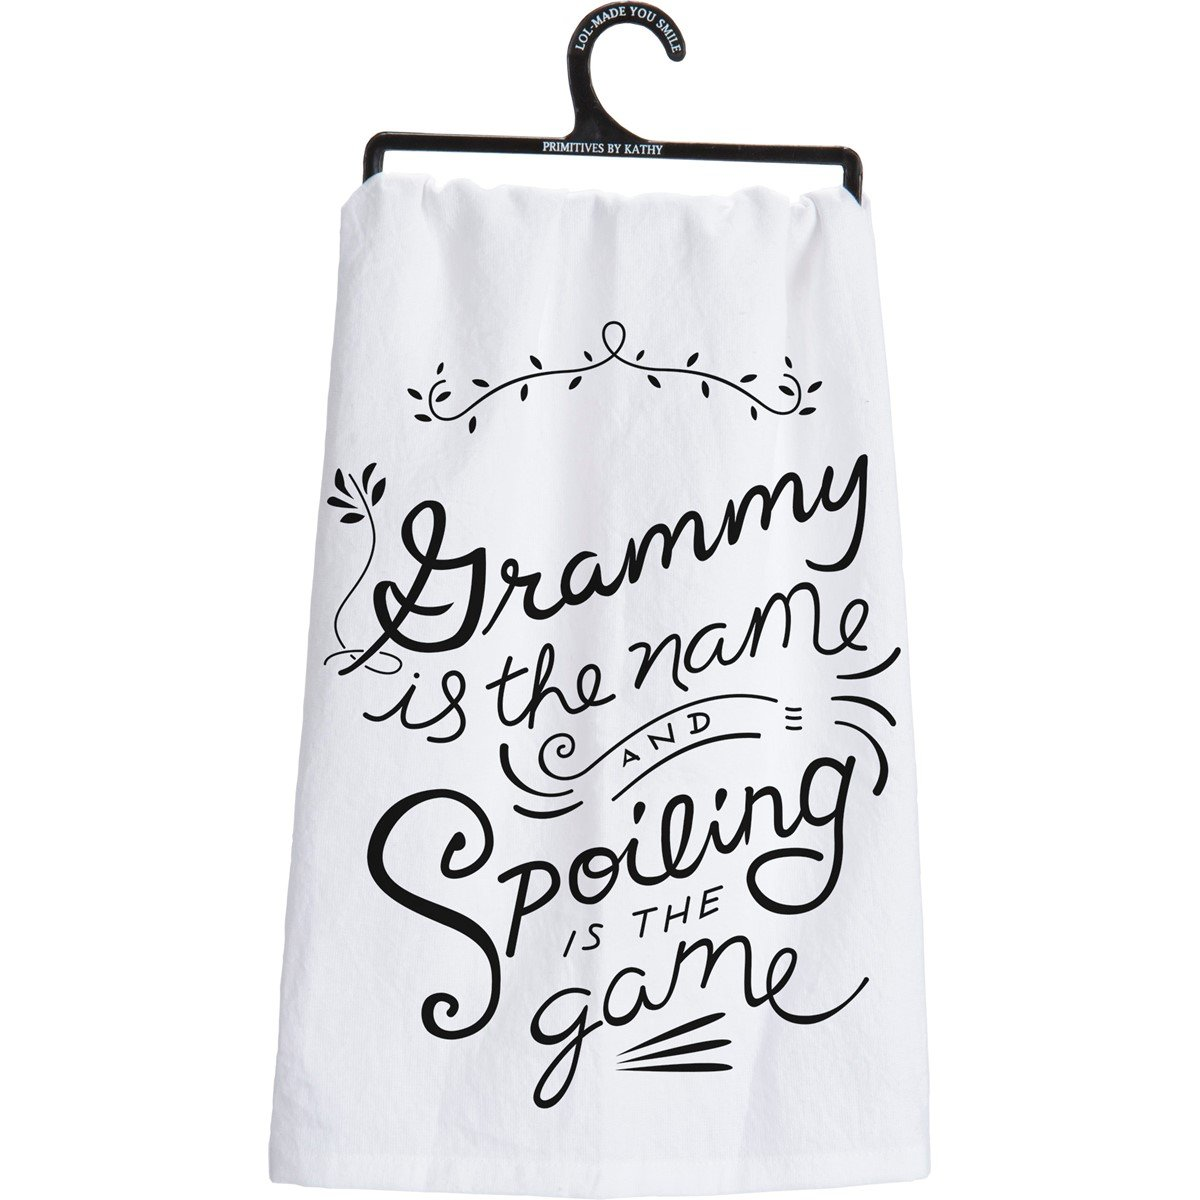 "Dish Towel - Grammy Is The Name Spoiling - 28"" x 28"" - Cotton"